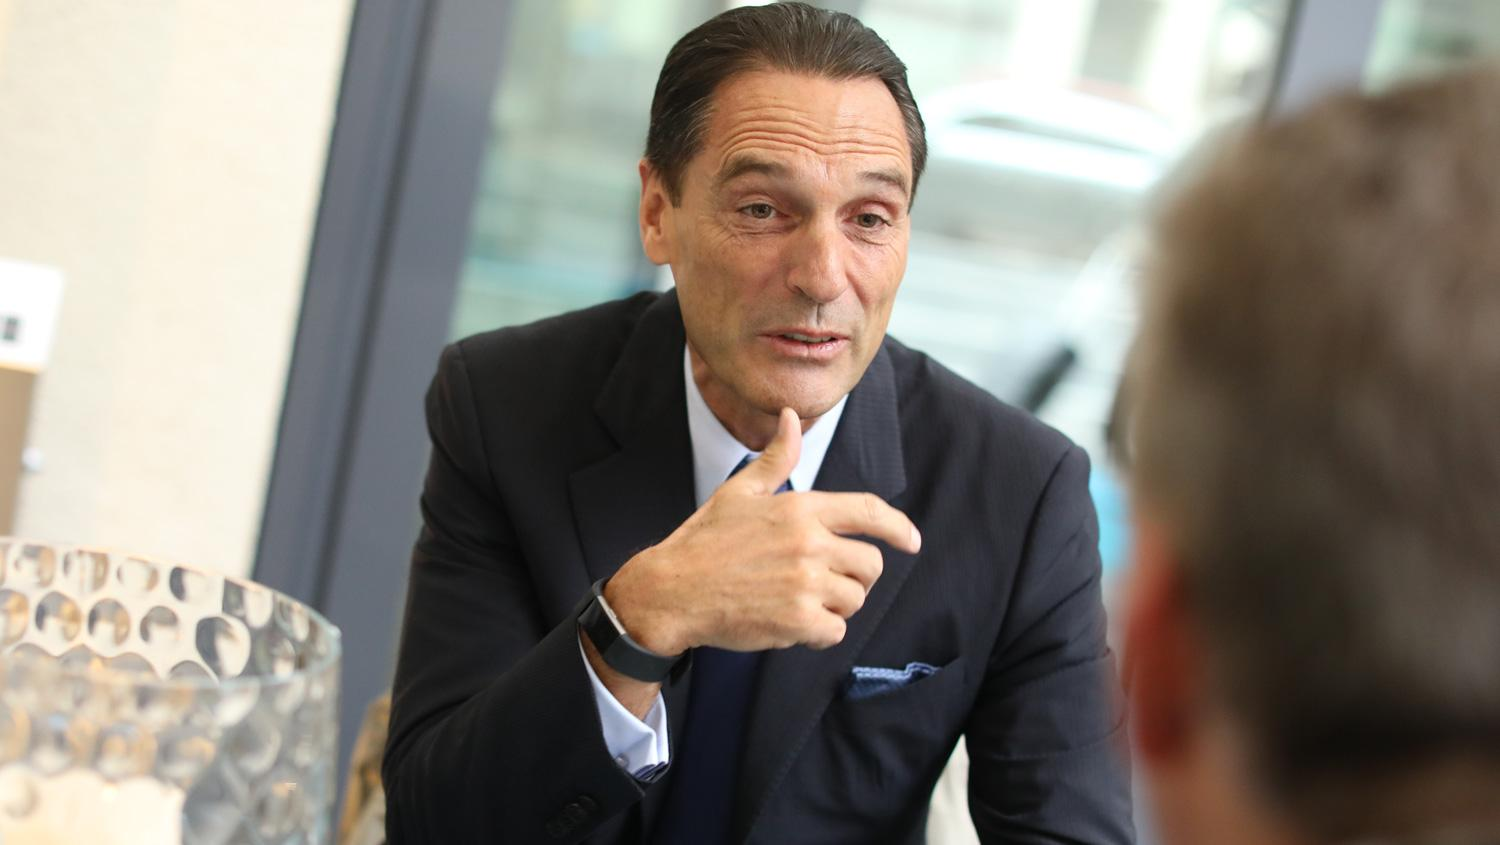 Thomas-Cook-CEO Peter Fankhauser